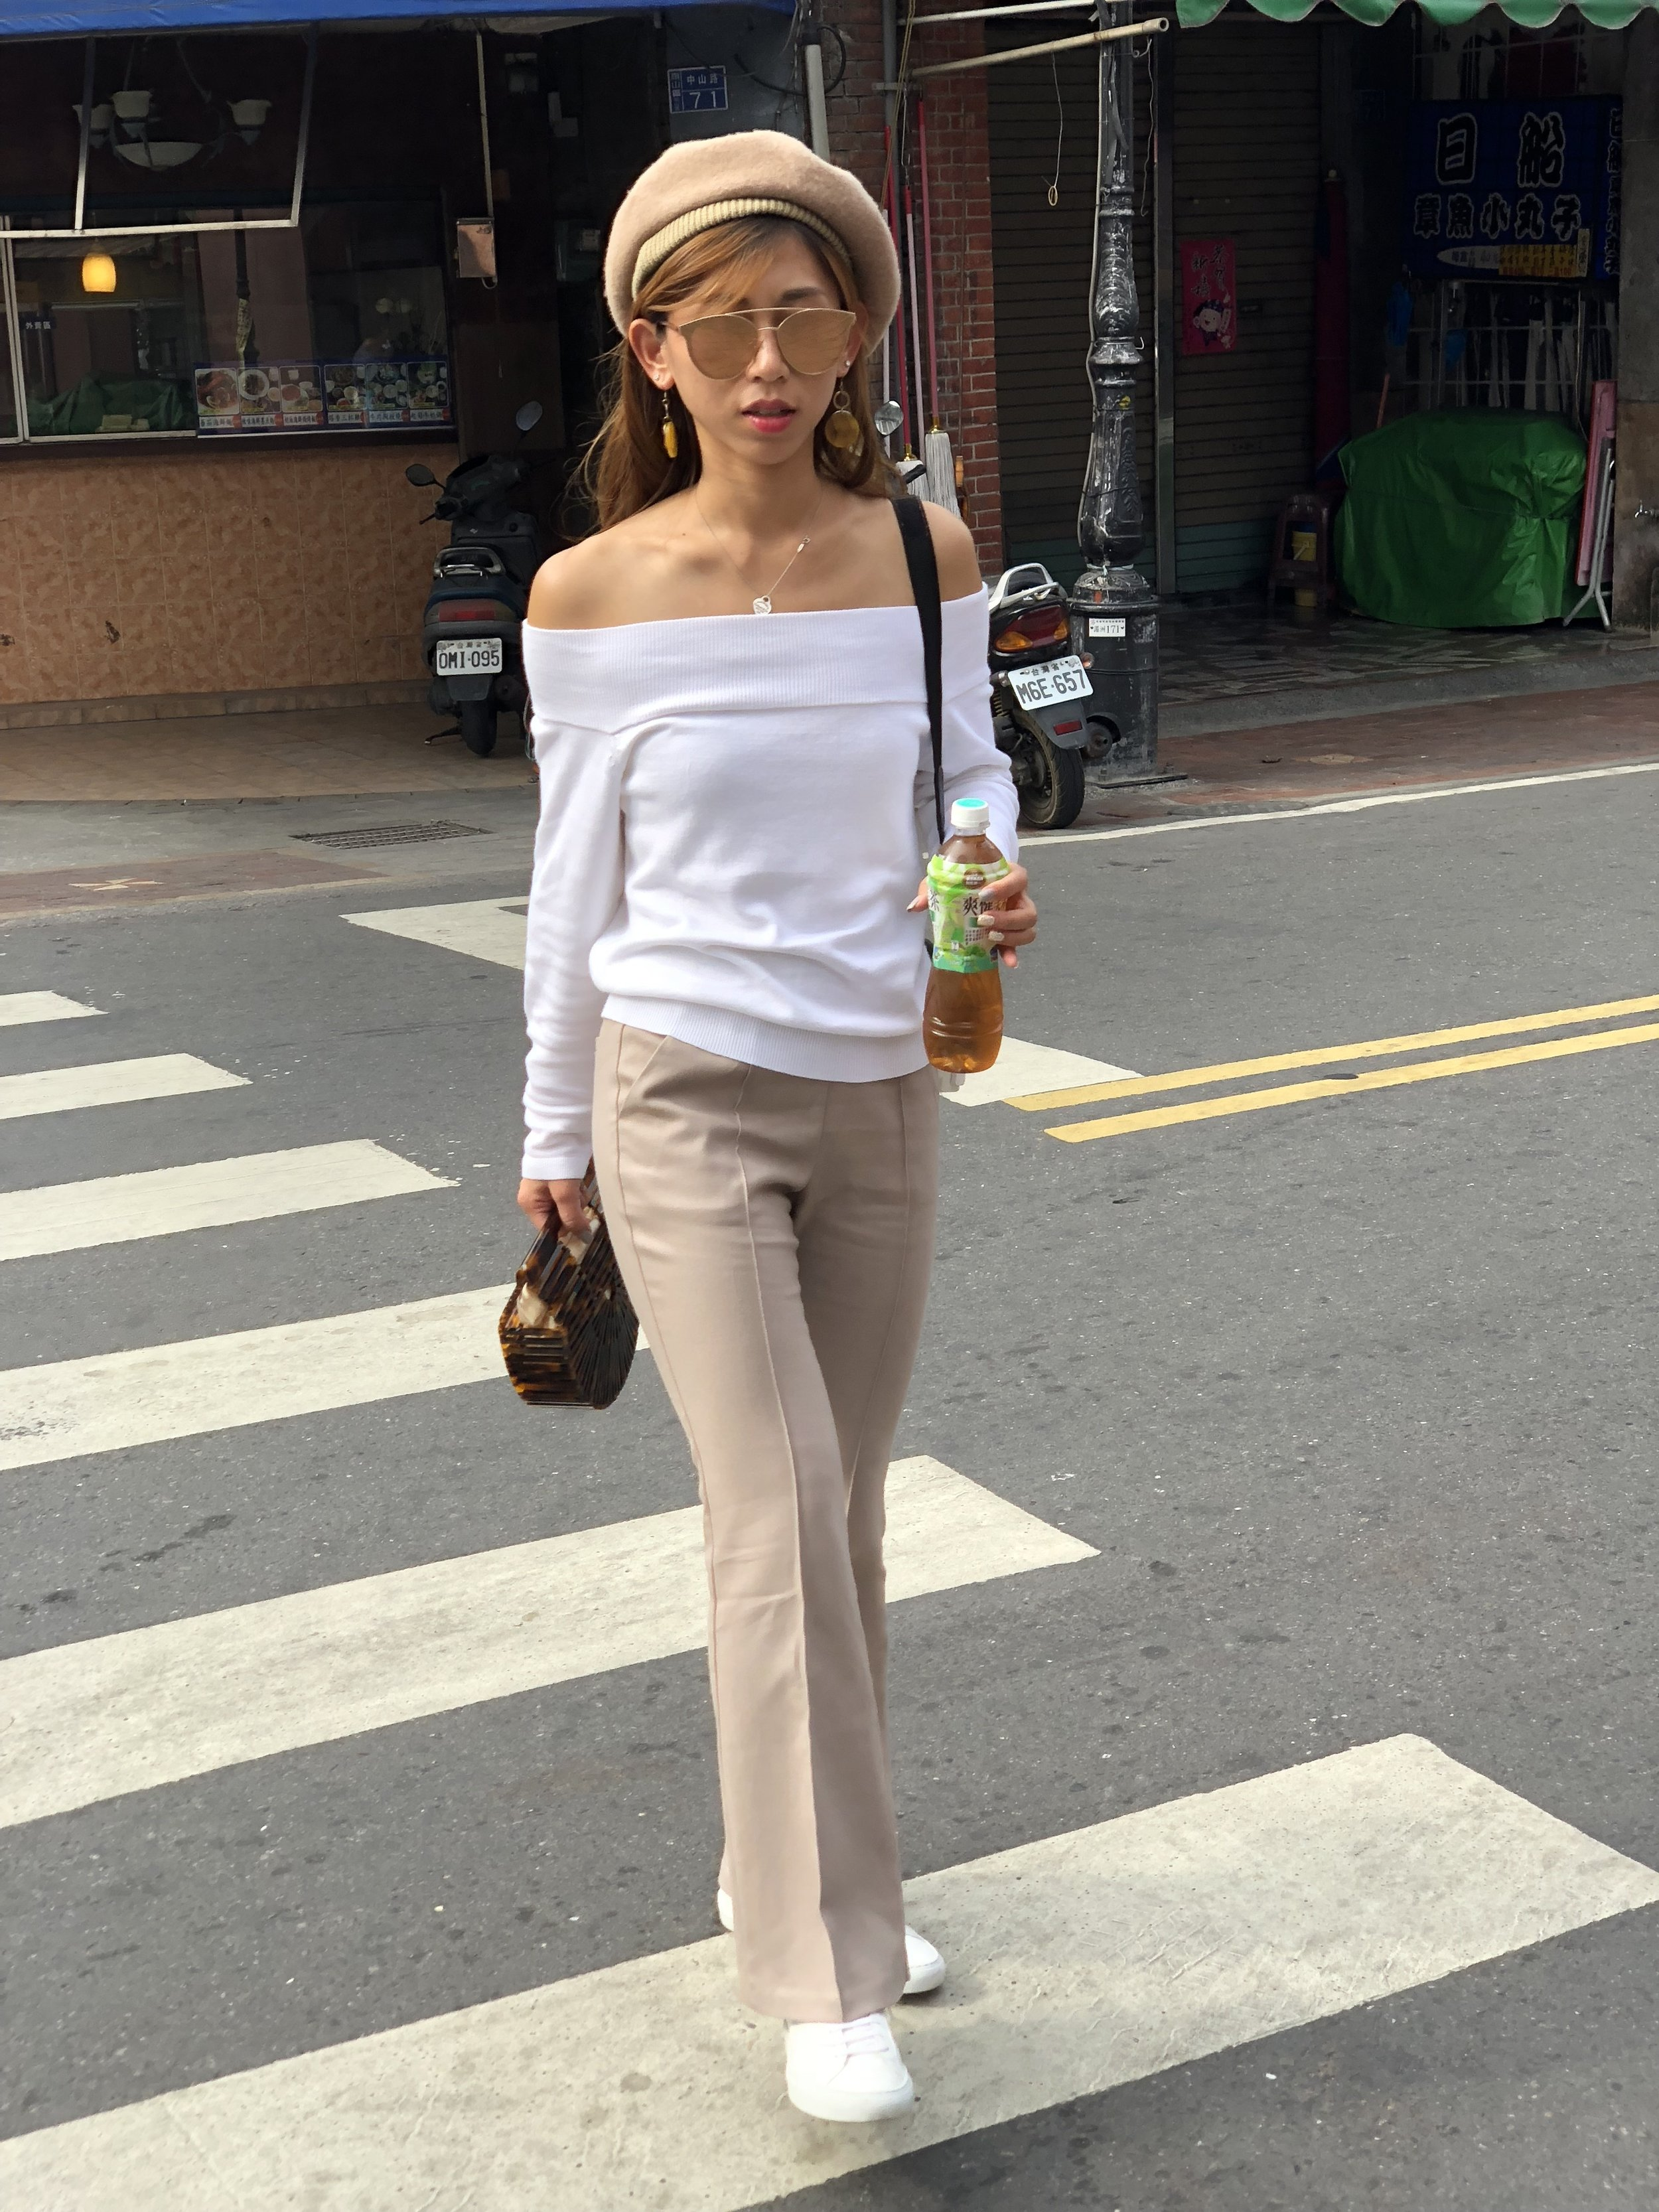 B+ab white top /  StudioDoe beige flared pants  /  Common Projects classic lace-up sneakers (glossy)  /  Cult Gaia acrylic ark - tortoise (mini)  /  Gentle Monster Last Bow 03(pm)  / Beret from Taiwan